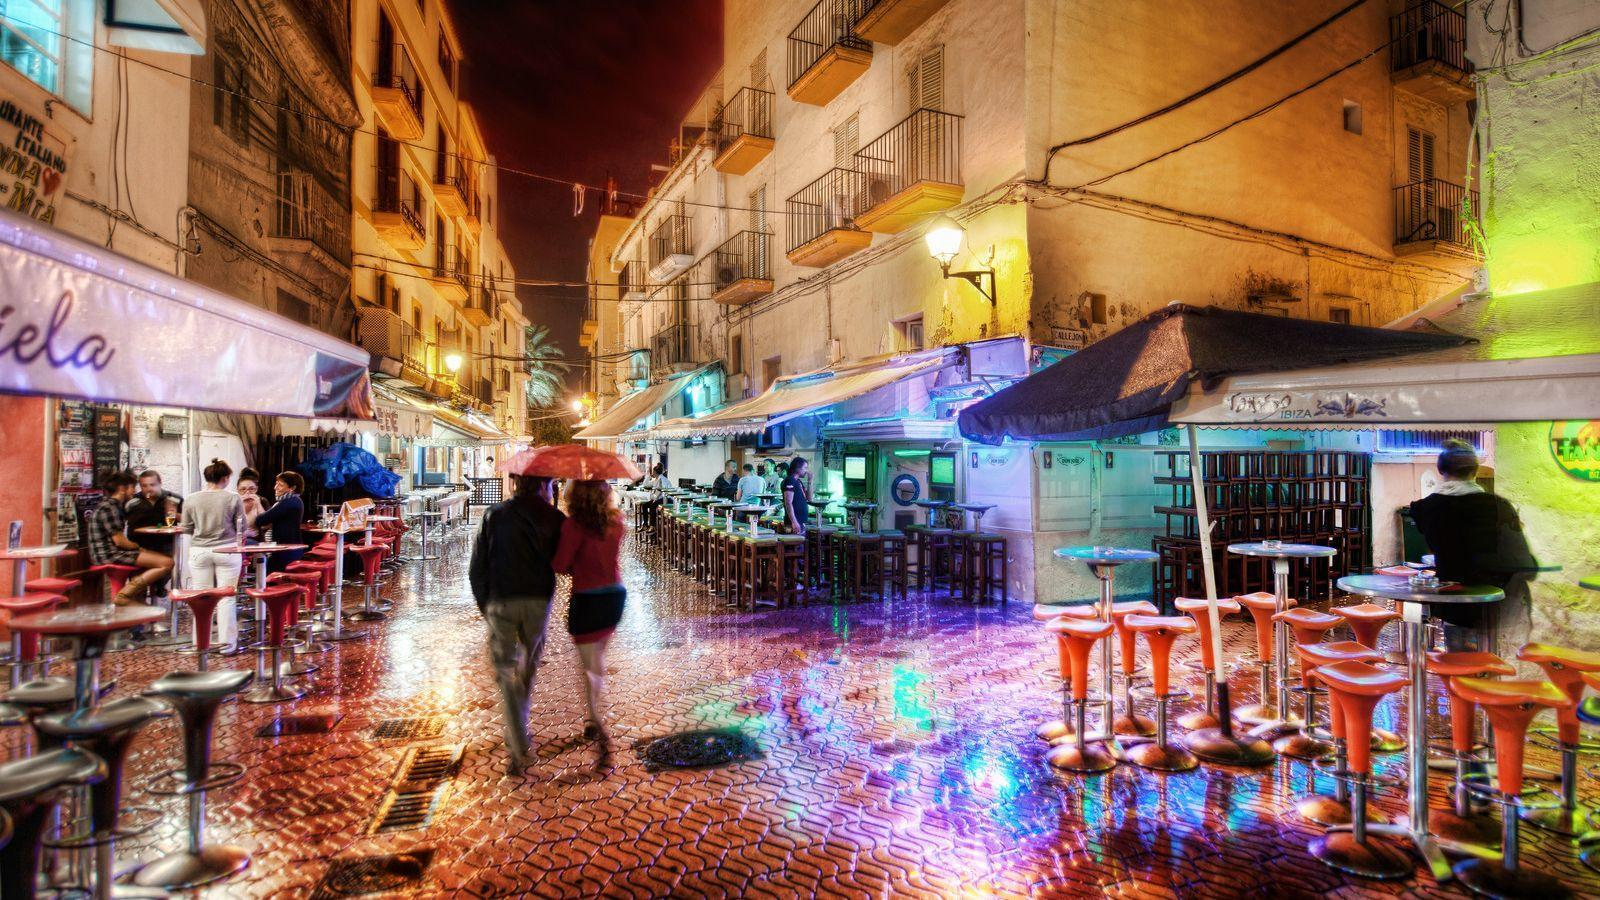 A Rainy and Romantic Night in Ibiza widescreen wallpapers